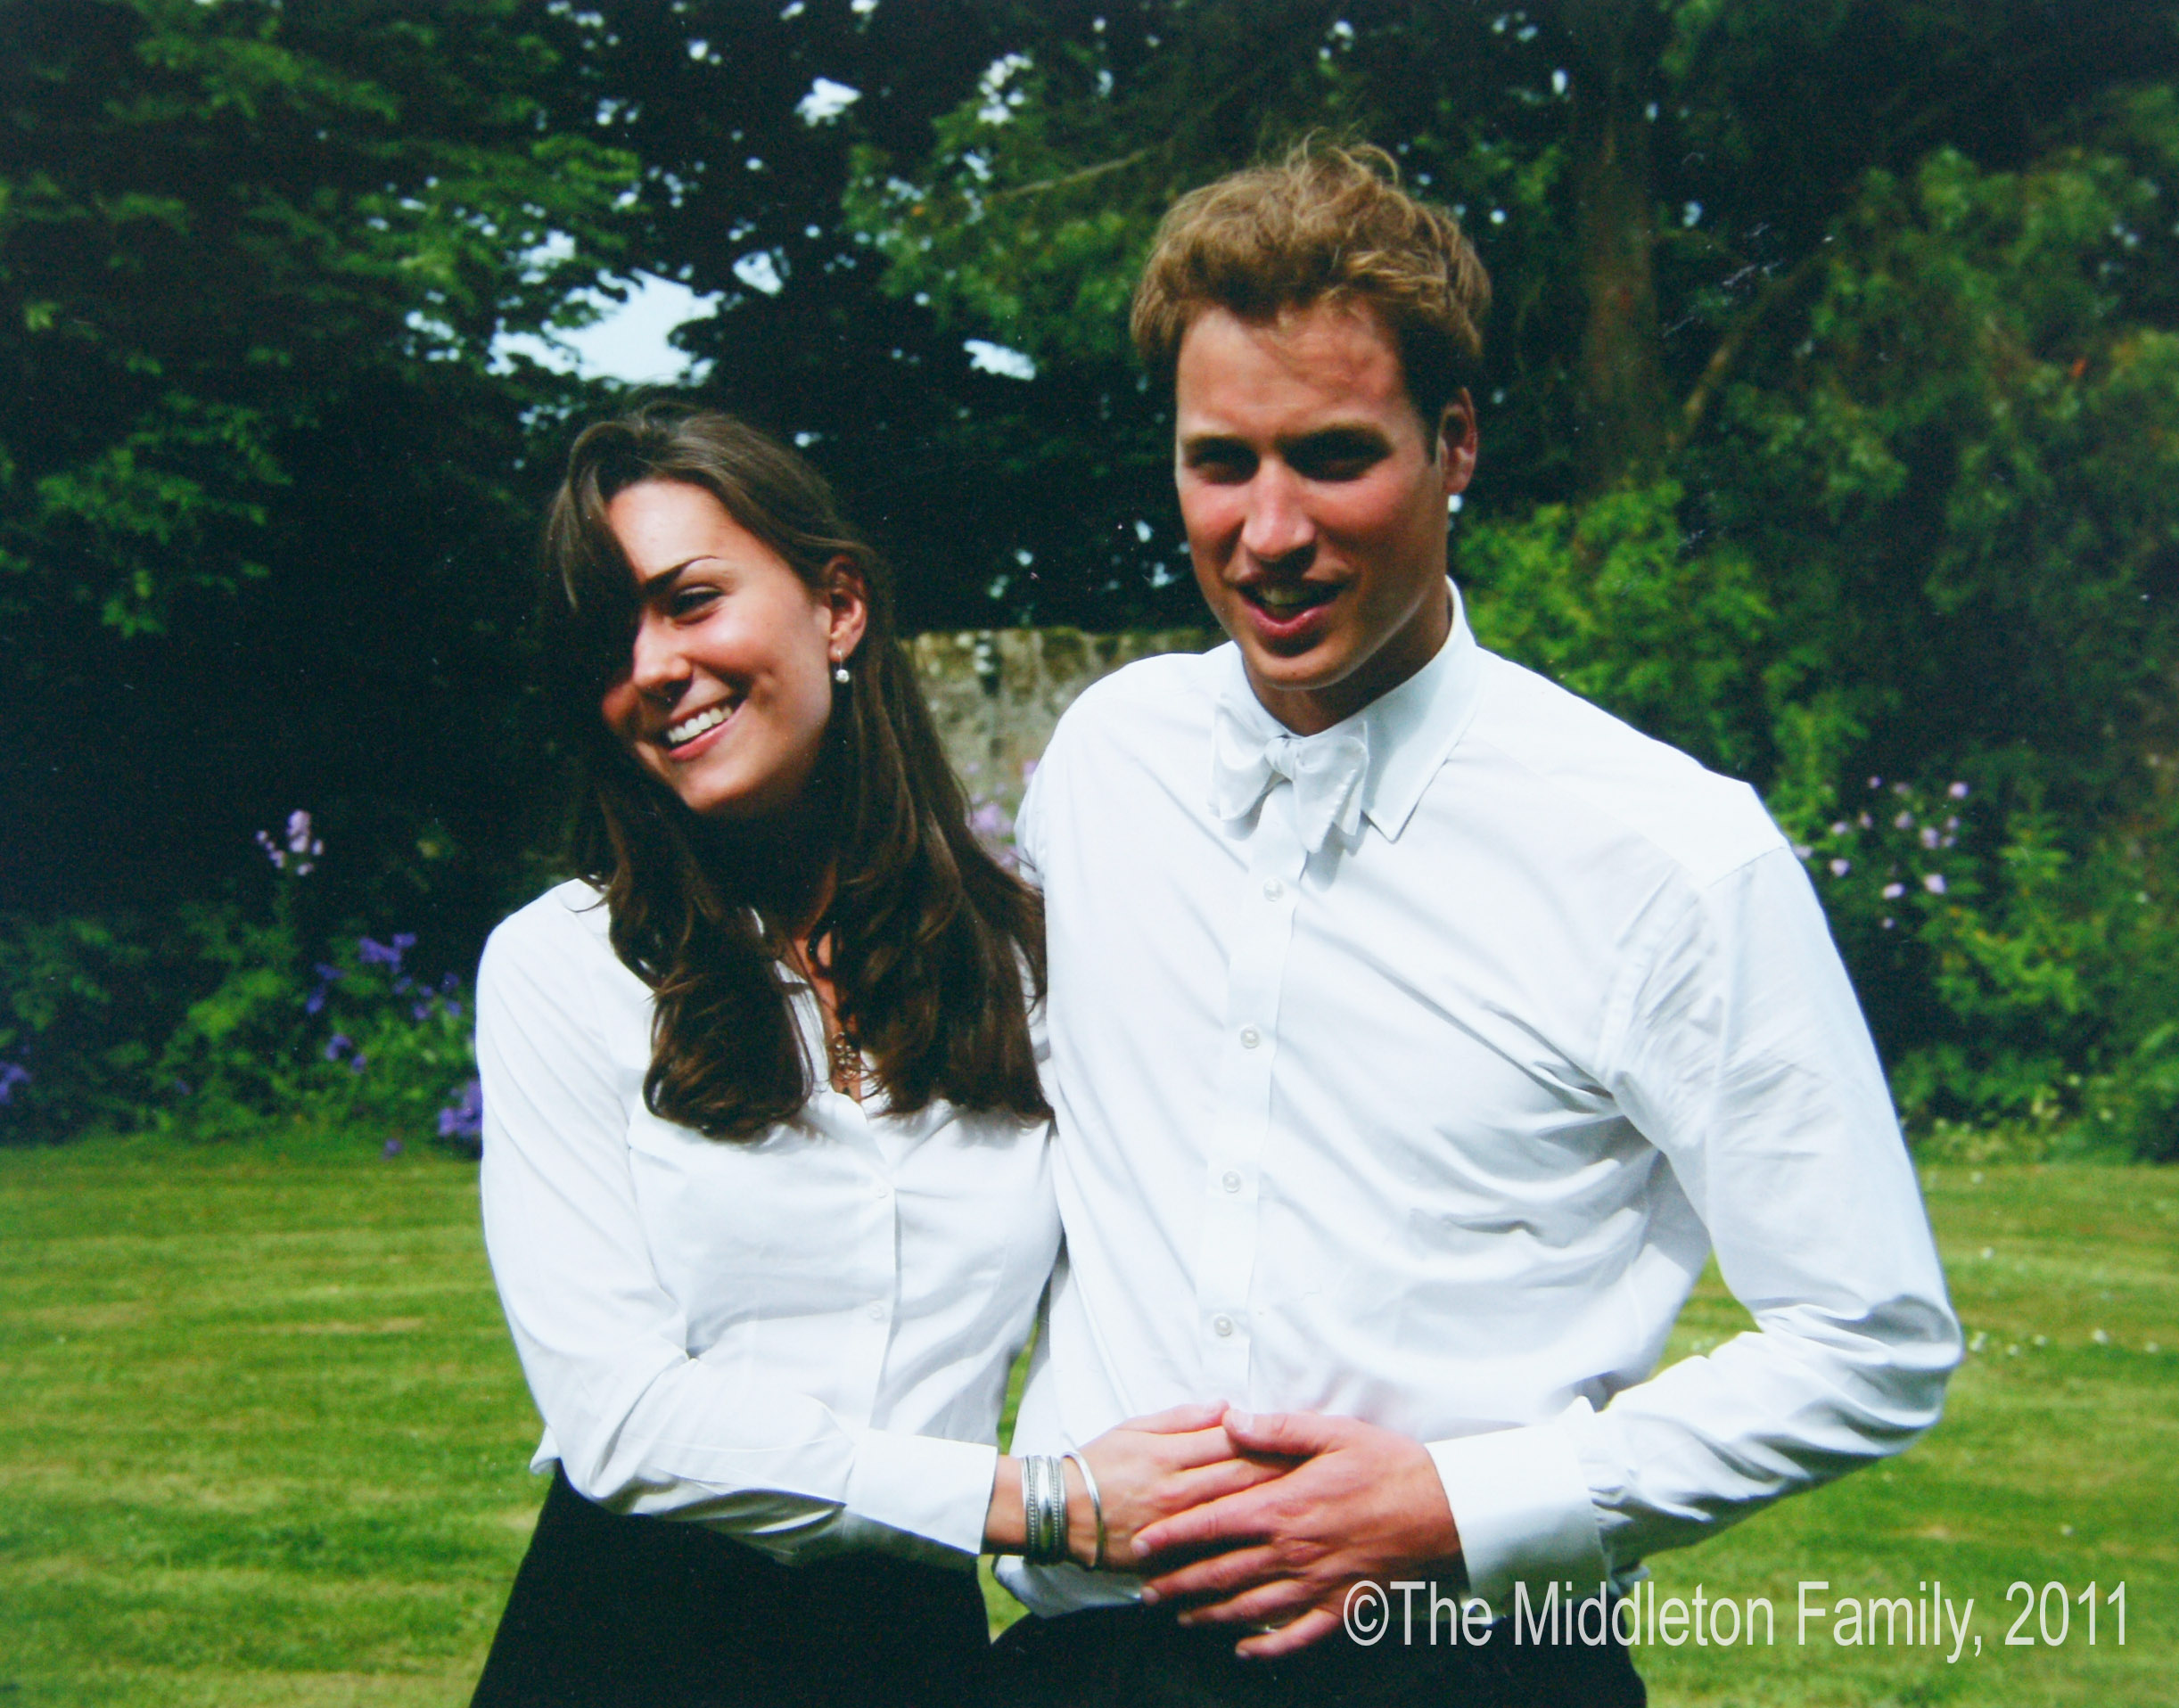 ST ANDEWS, SCOTLAND - JUNE 23: (NO SALES) In this Handout Image provided by Clarence House www.officialroyalwedding2011.org, Kate Middleton and Prince William on the day of their graduation ceremony at St Andrew's University in St Andrew's on June 23, 2005 in Scotland (Getty Images)